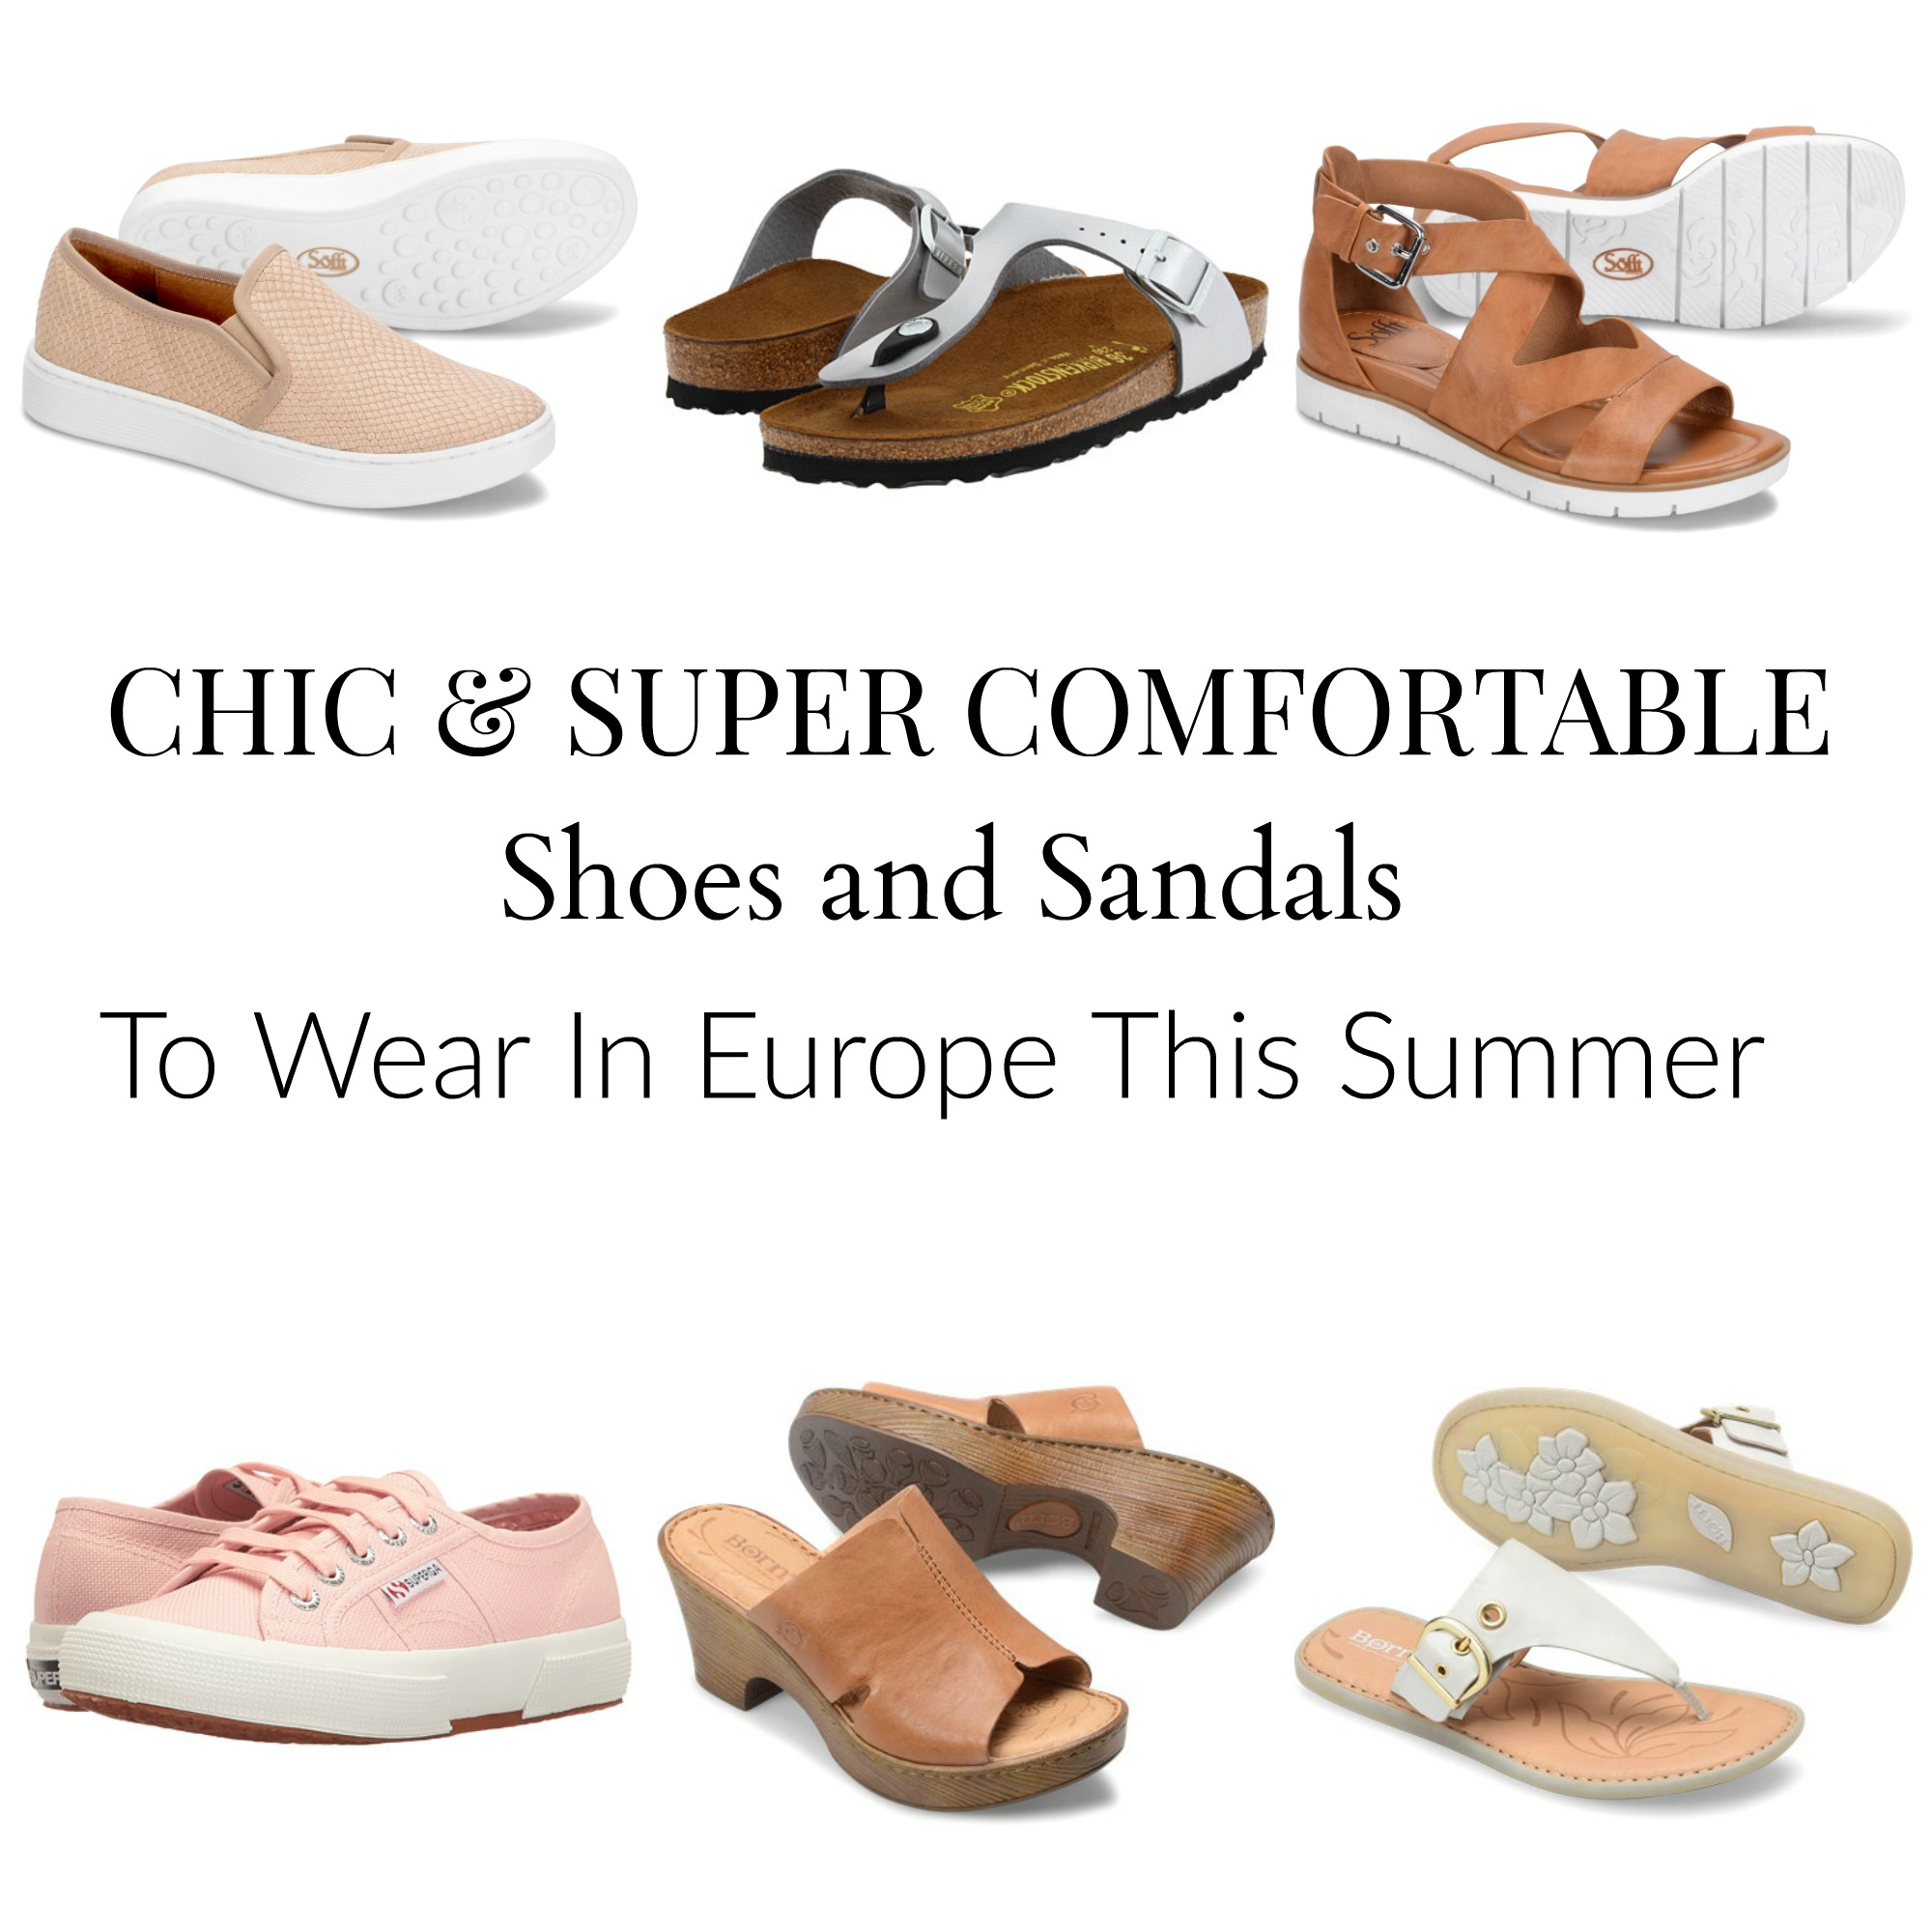 Best Shoes For Walking Around Europe In Summer